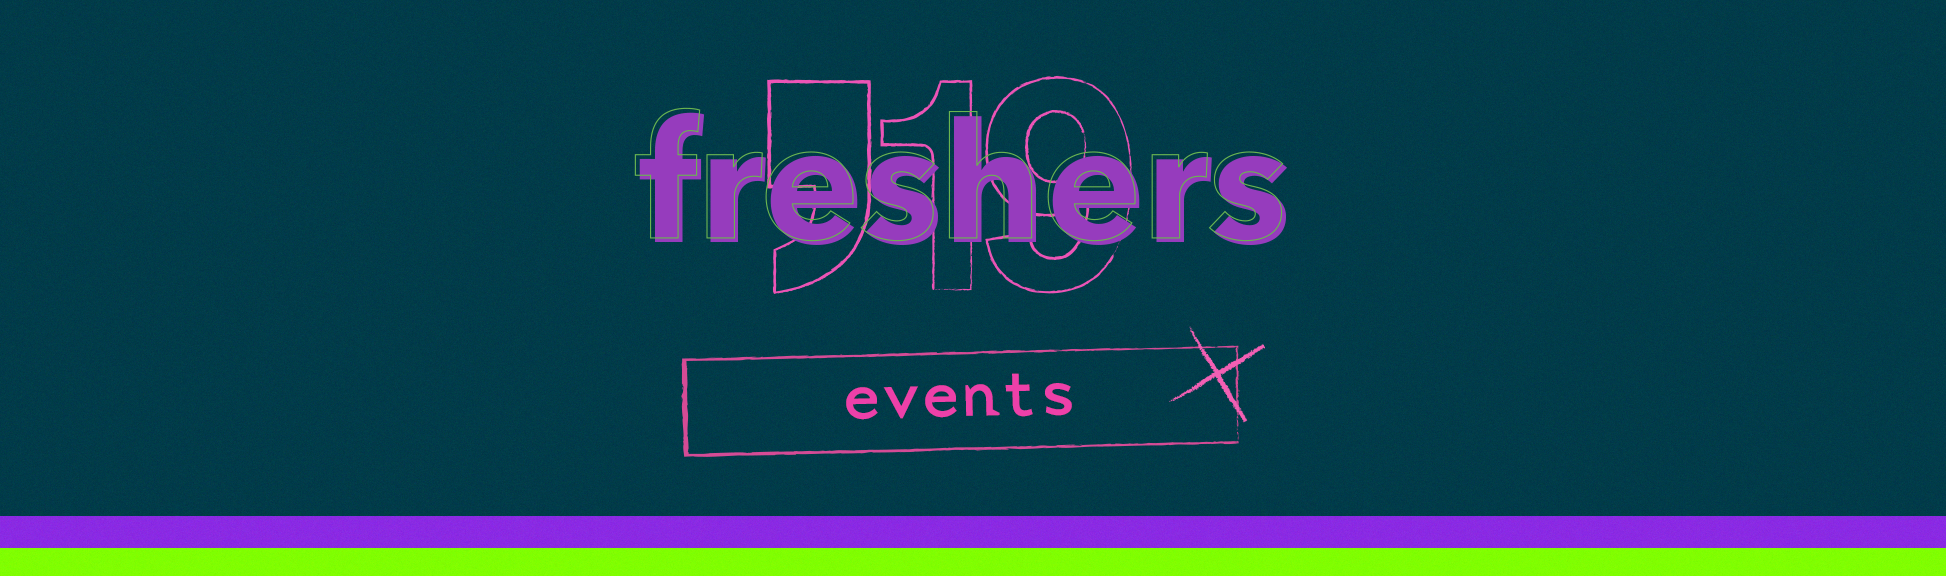 Freshers Events